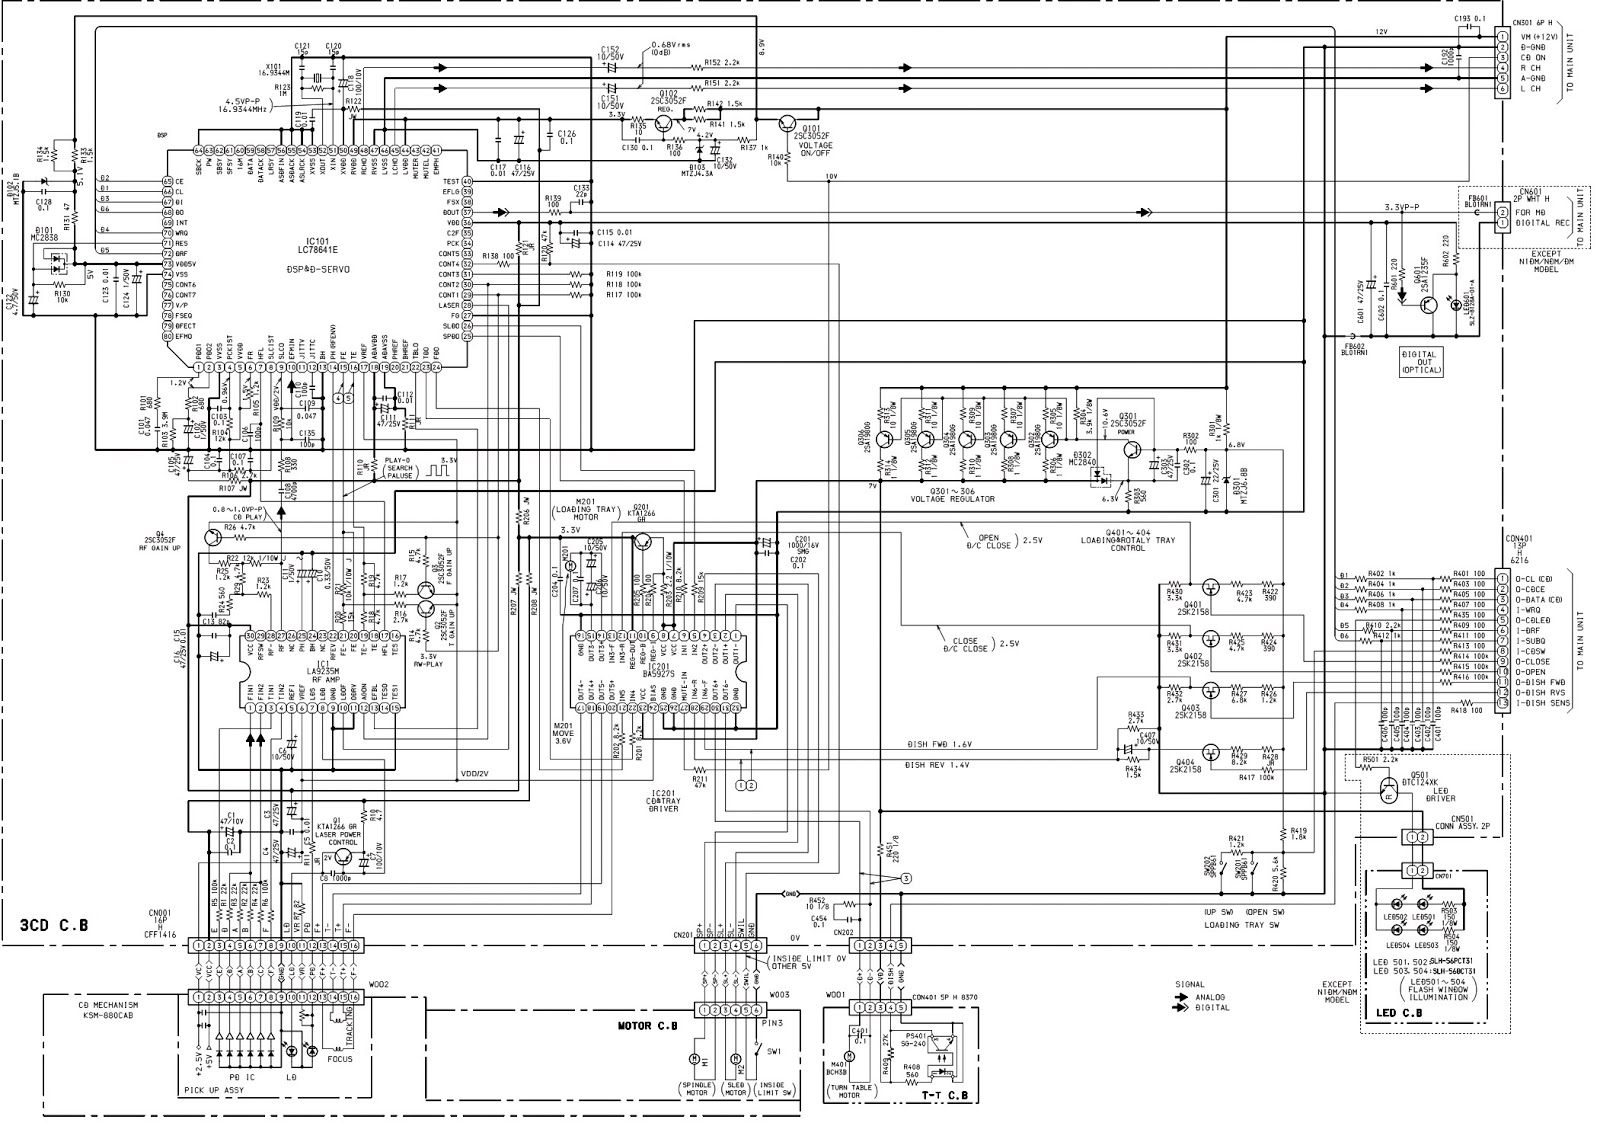 aiwa cd mechanism 3 cd changer how to adjust the rotating phase wiring diagram [ 1600 x 1123 Pixel ]